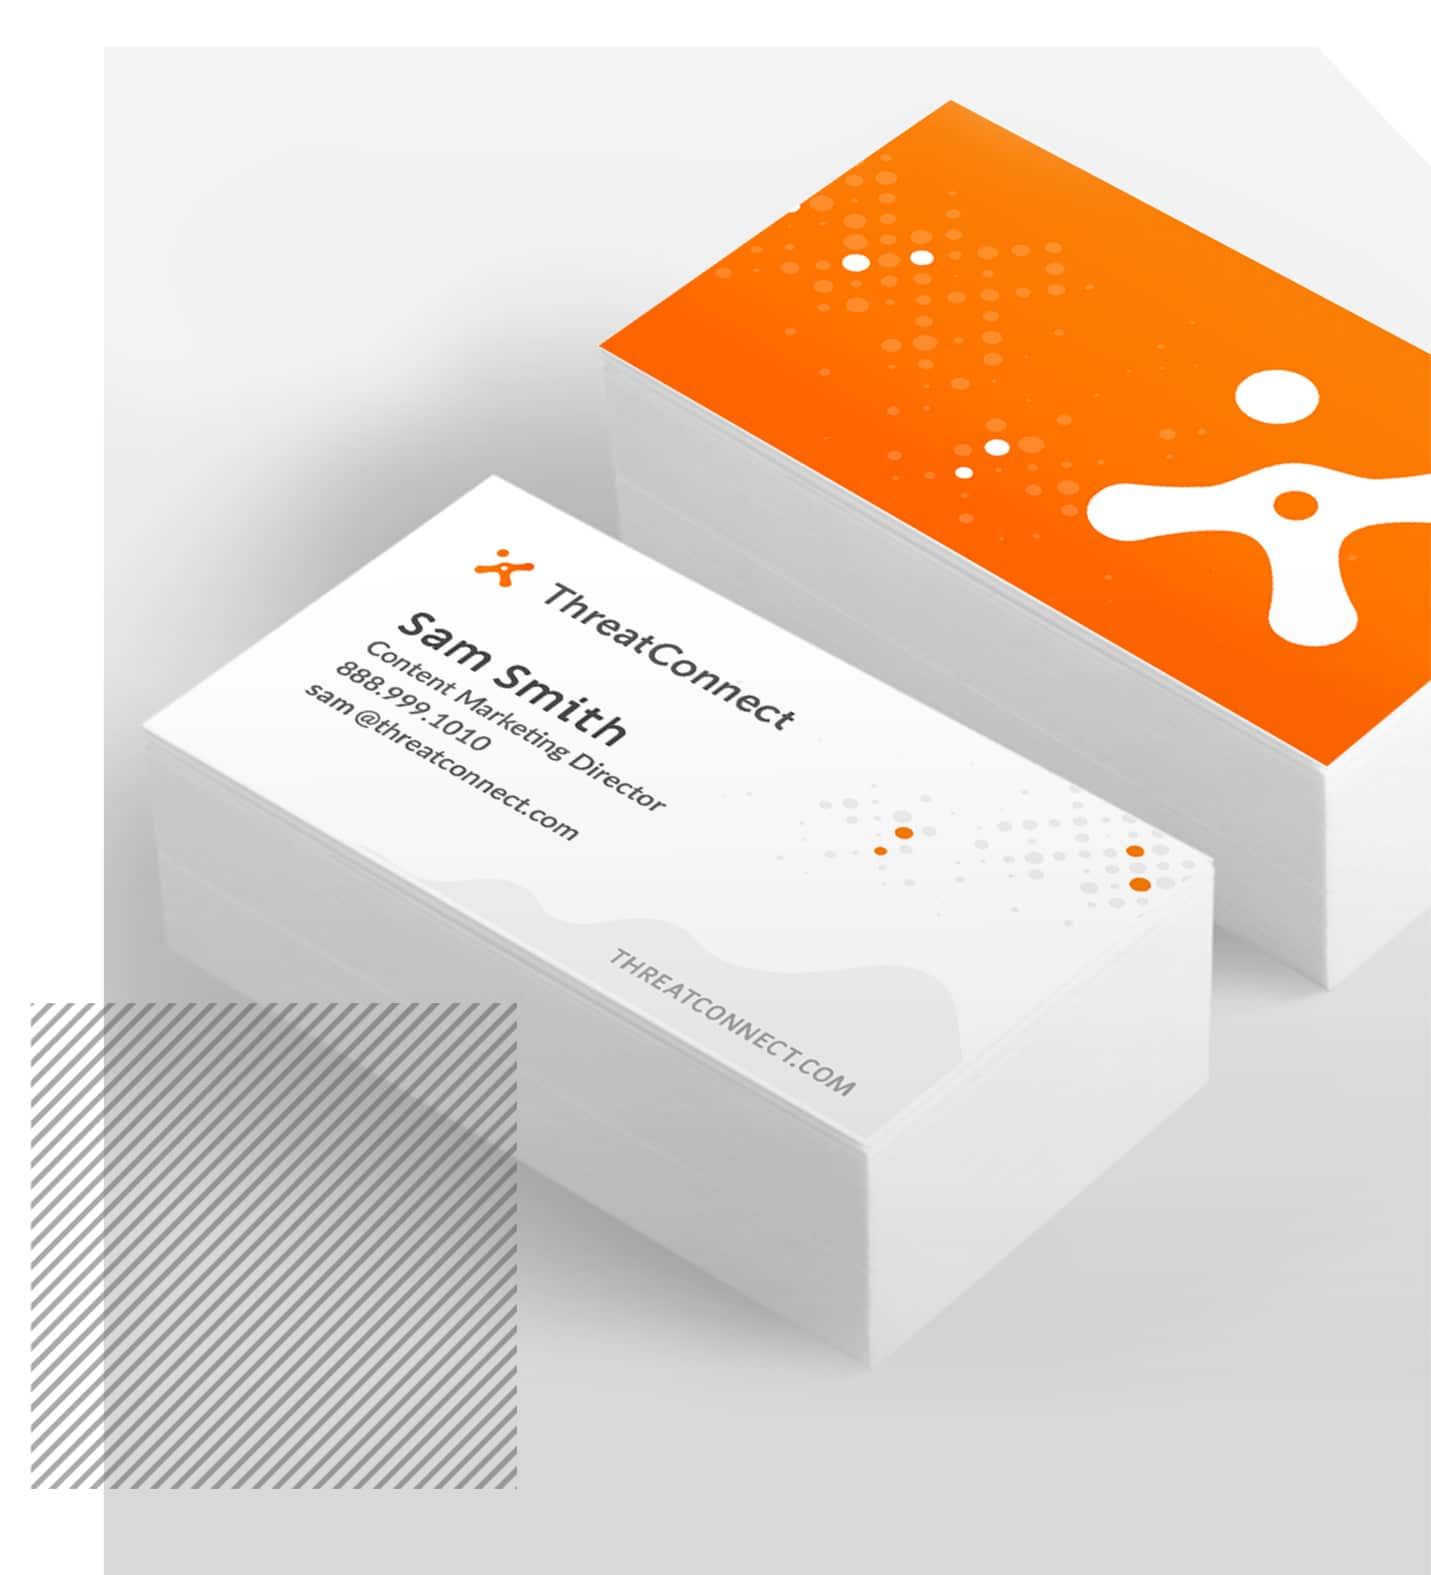 Punch - ThreatConnect Website Sidebar Business Cards